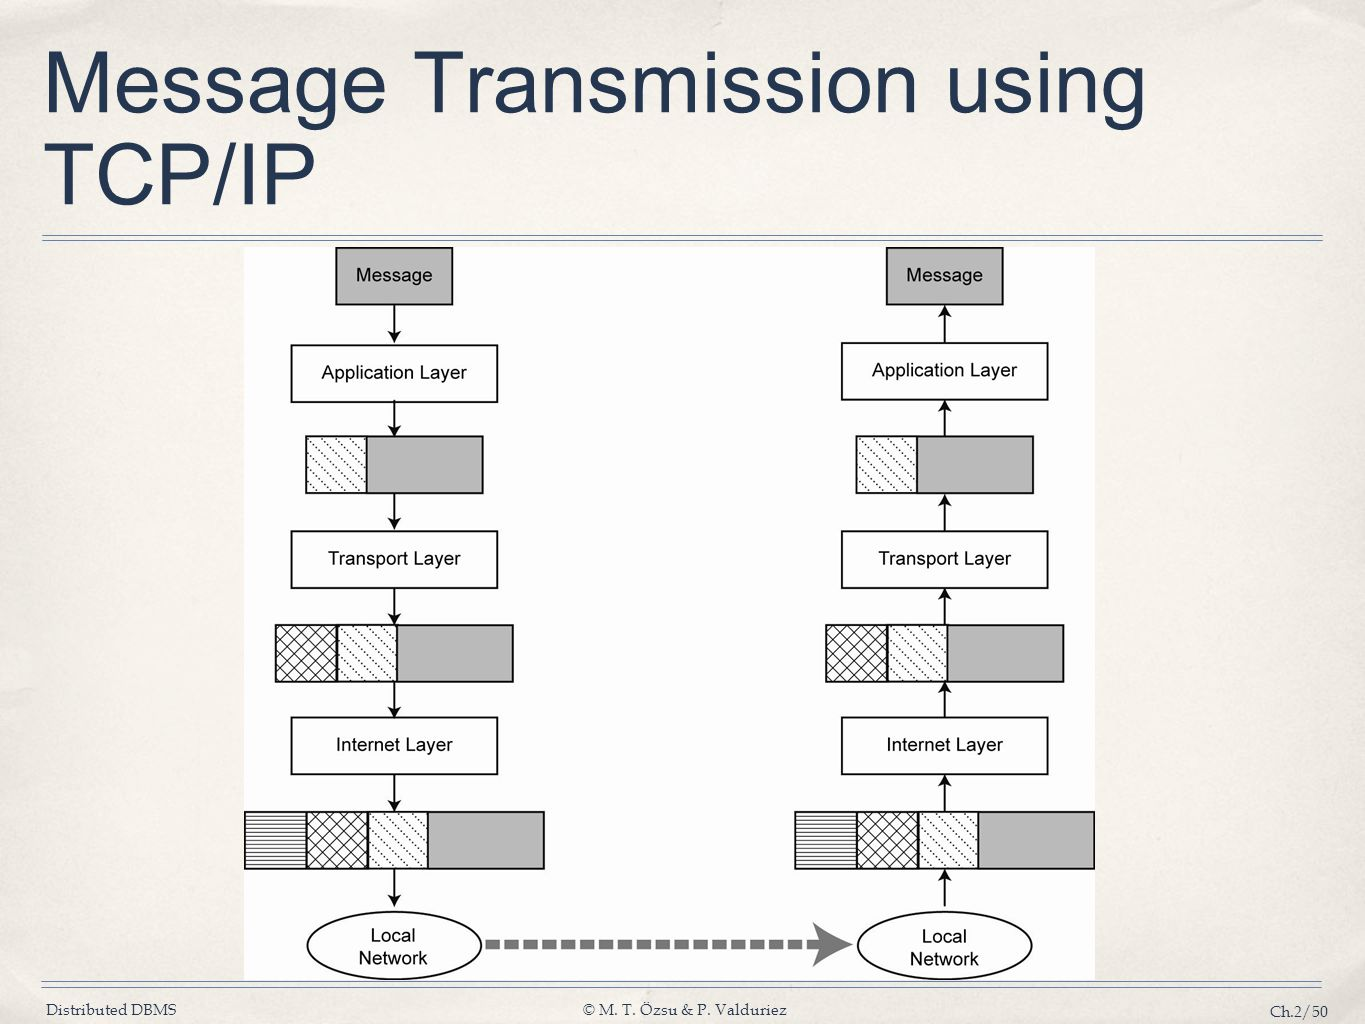 Message Transmission using TCP/IP